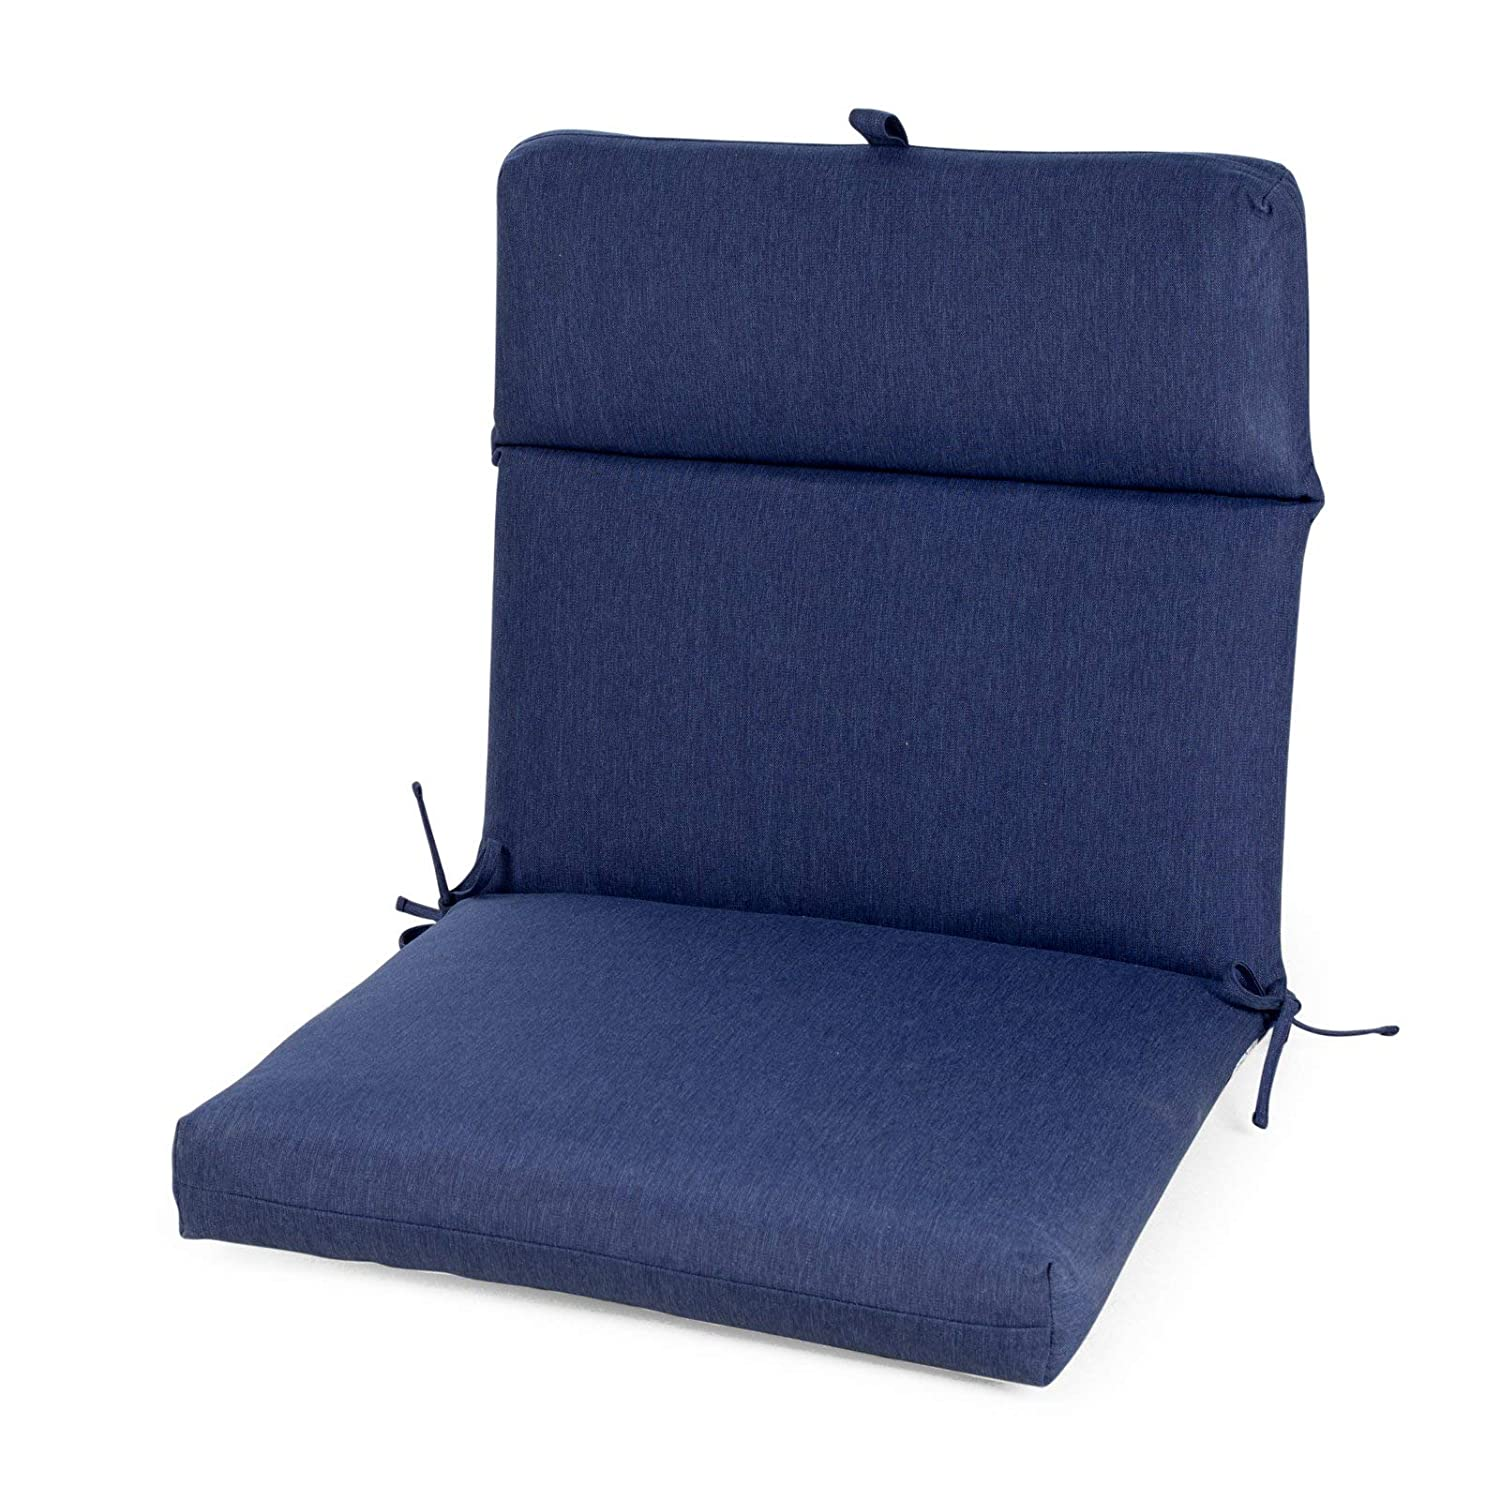 Marvelous Amazon Com Dark Blue Outdoor Patio Chair Cushion Hinged Pabps2019 Chair Design Images Pabps2019Com